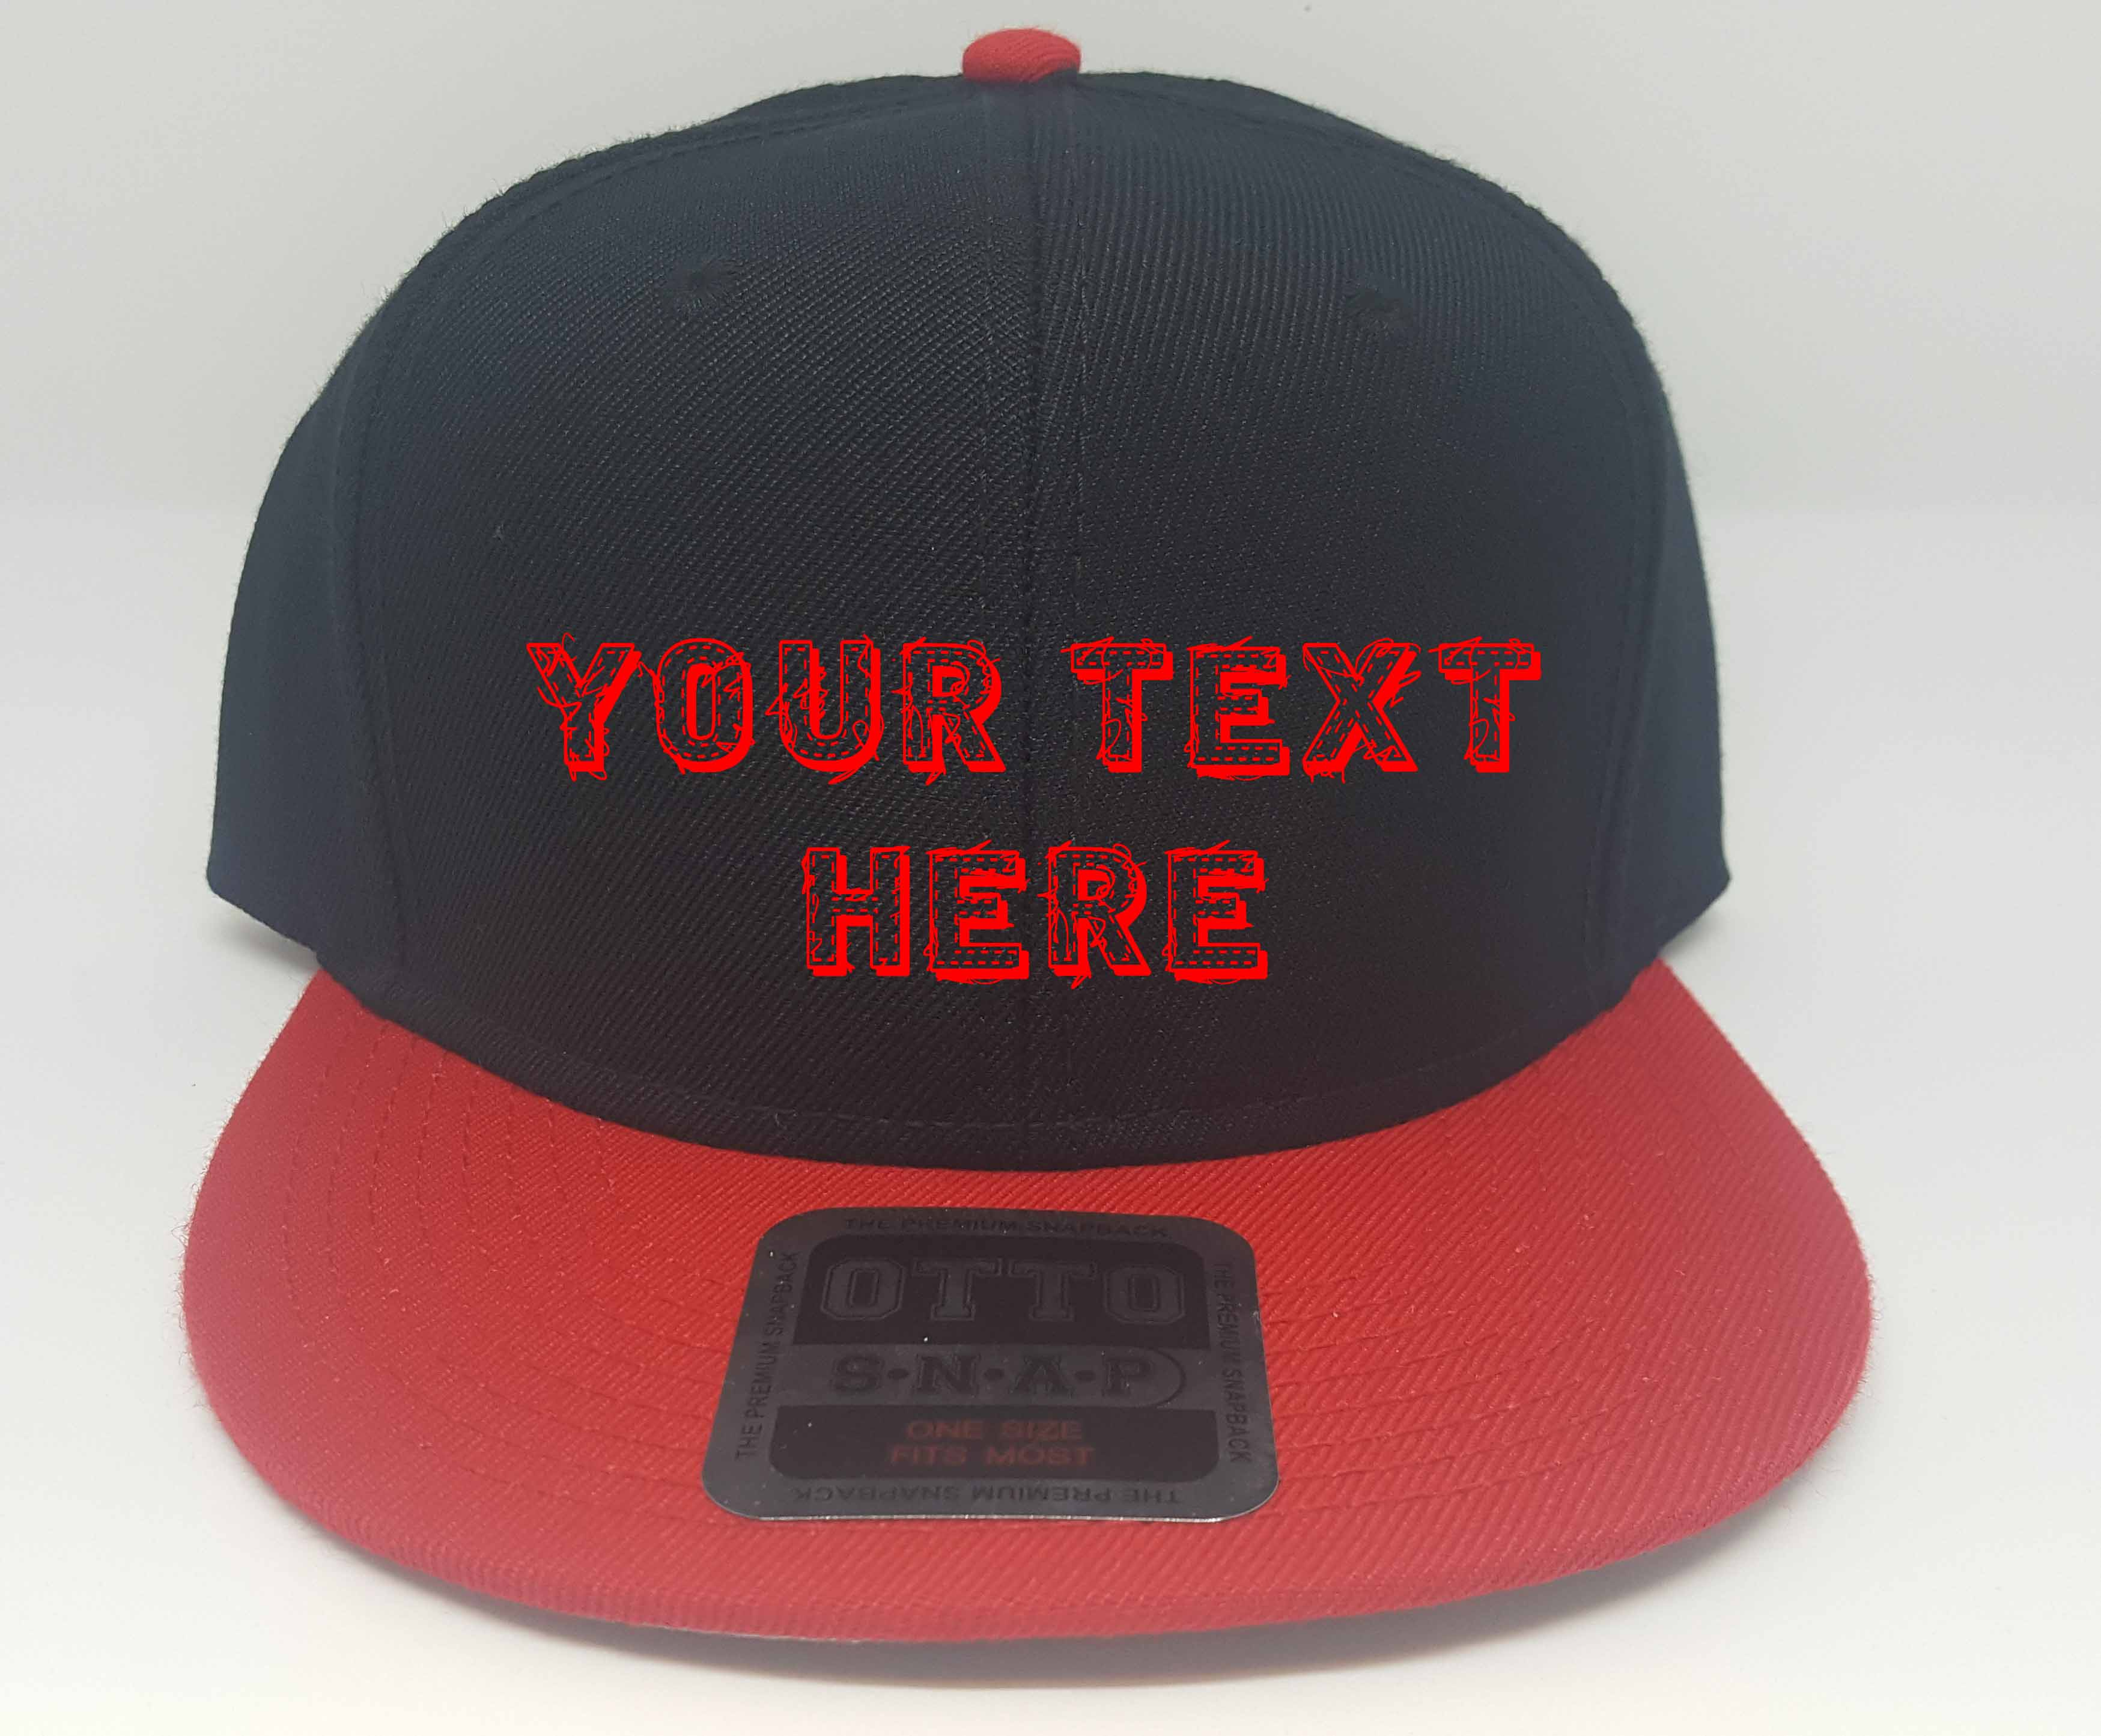 Details about Custom Embroidered Otto Wool Blend Twill Flat Visor Snapback  Pro Style Red Black e051ccc9cc8